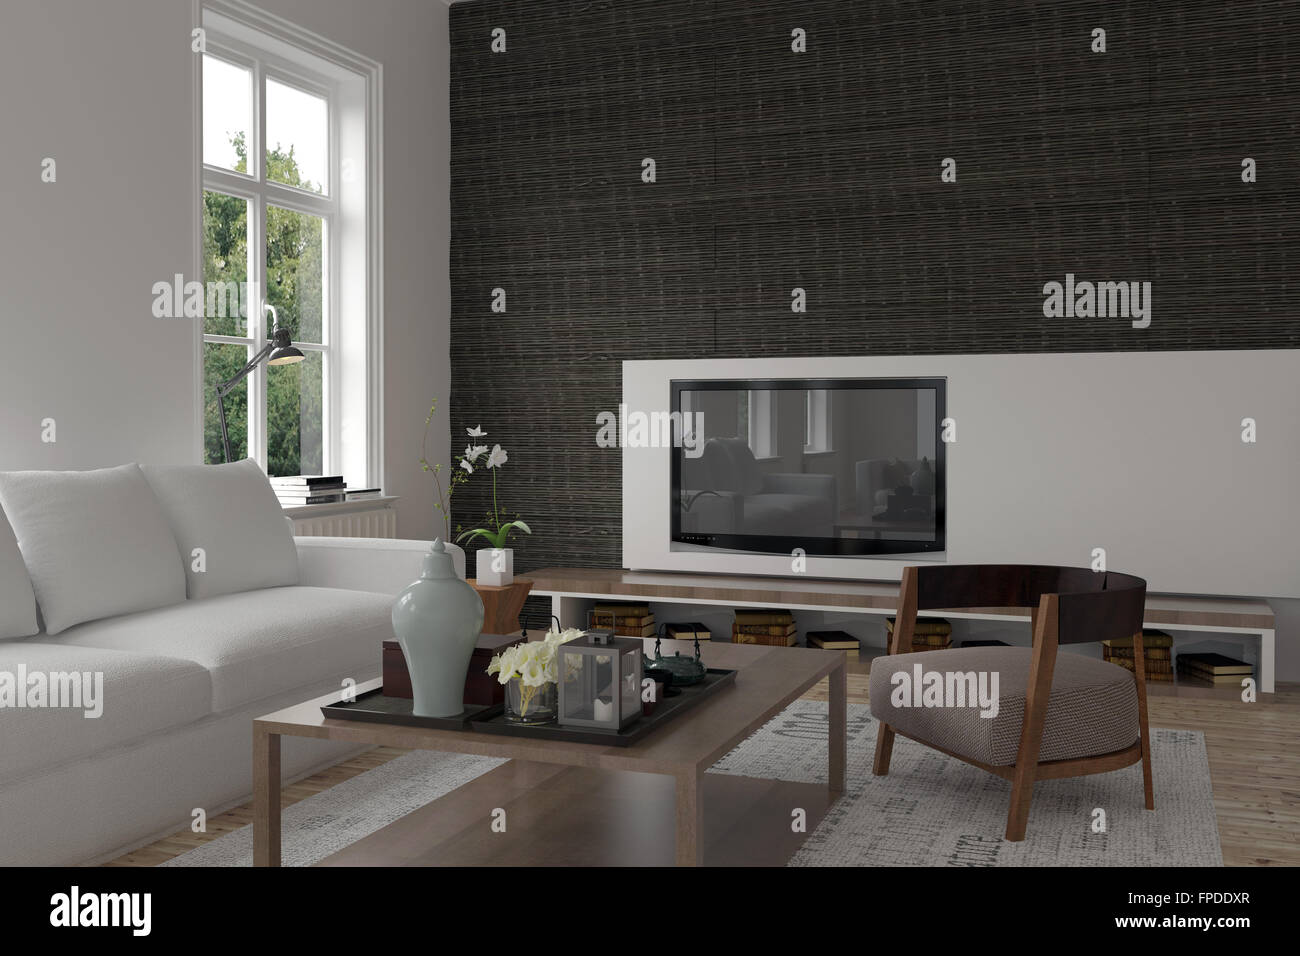 Modern Living Room Interior With A Television Set Wall